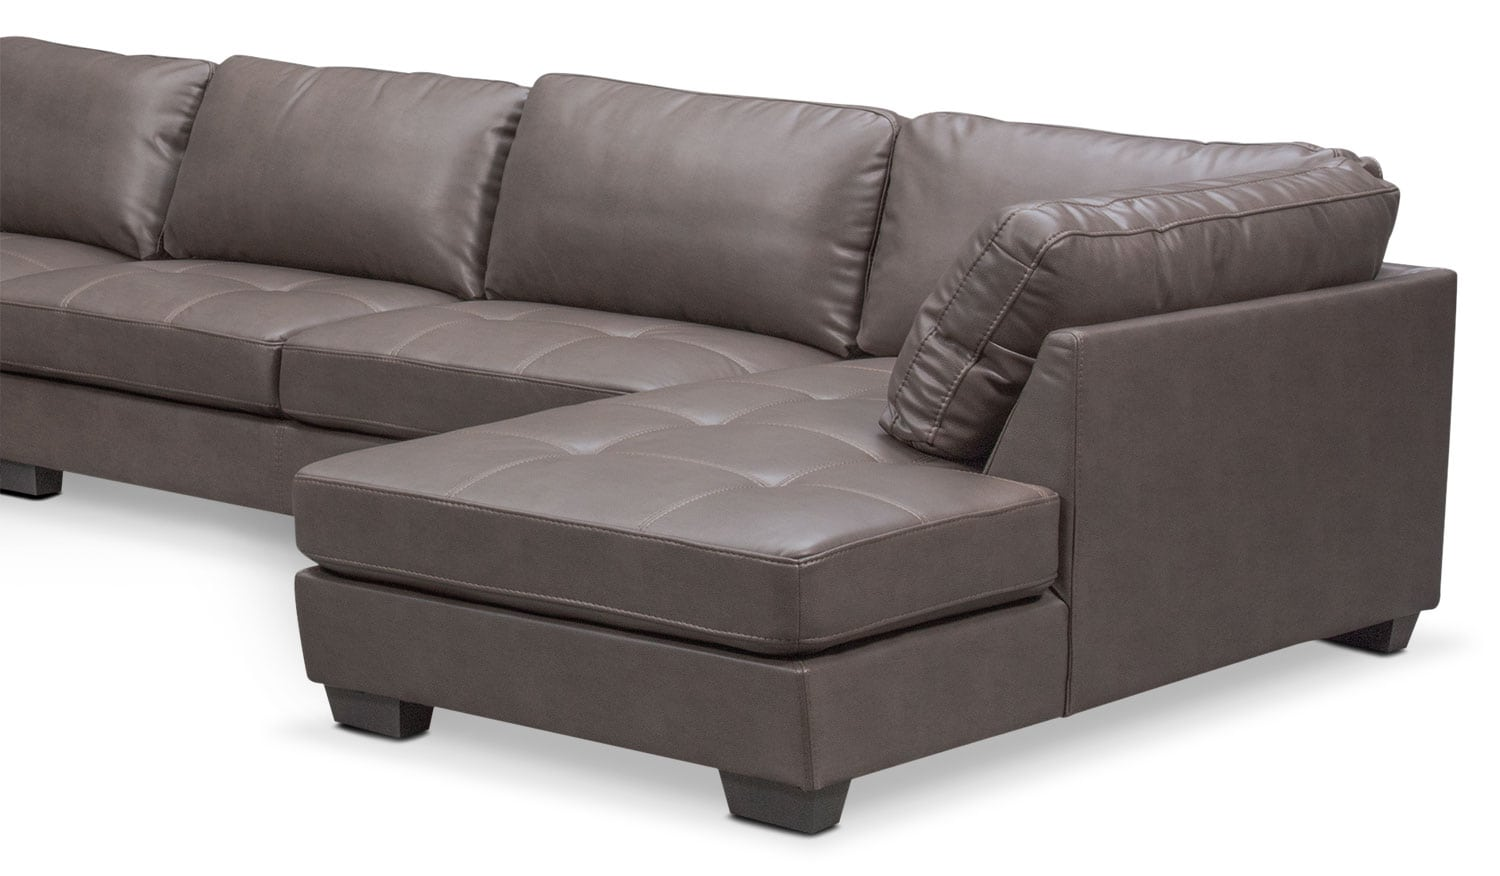 Santana 4 piece sectional with right facing chaise gray for 4 piece sectional sofa with chaise